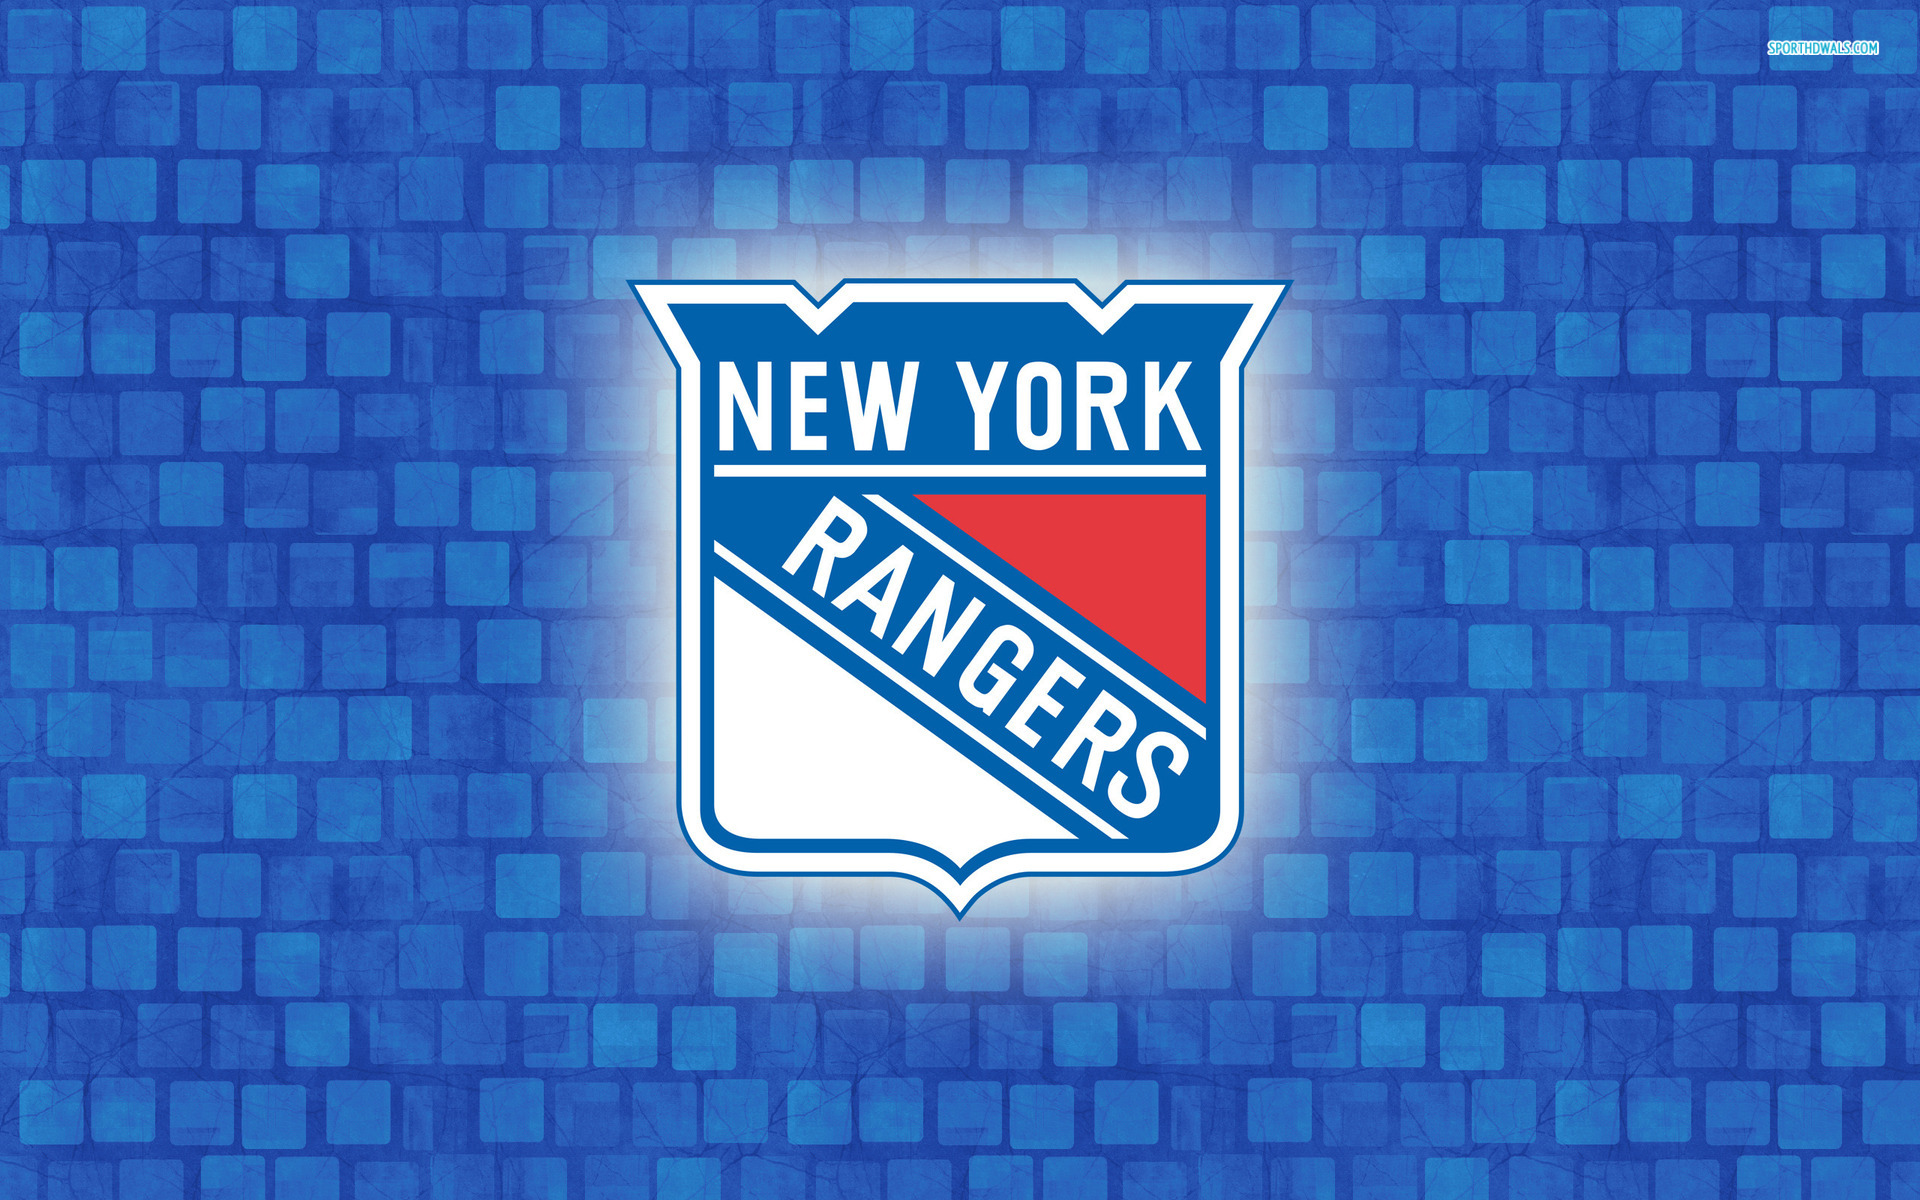 New York Rangers wallpapers New York Rangers background   Page 4 1920x1200